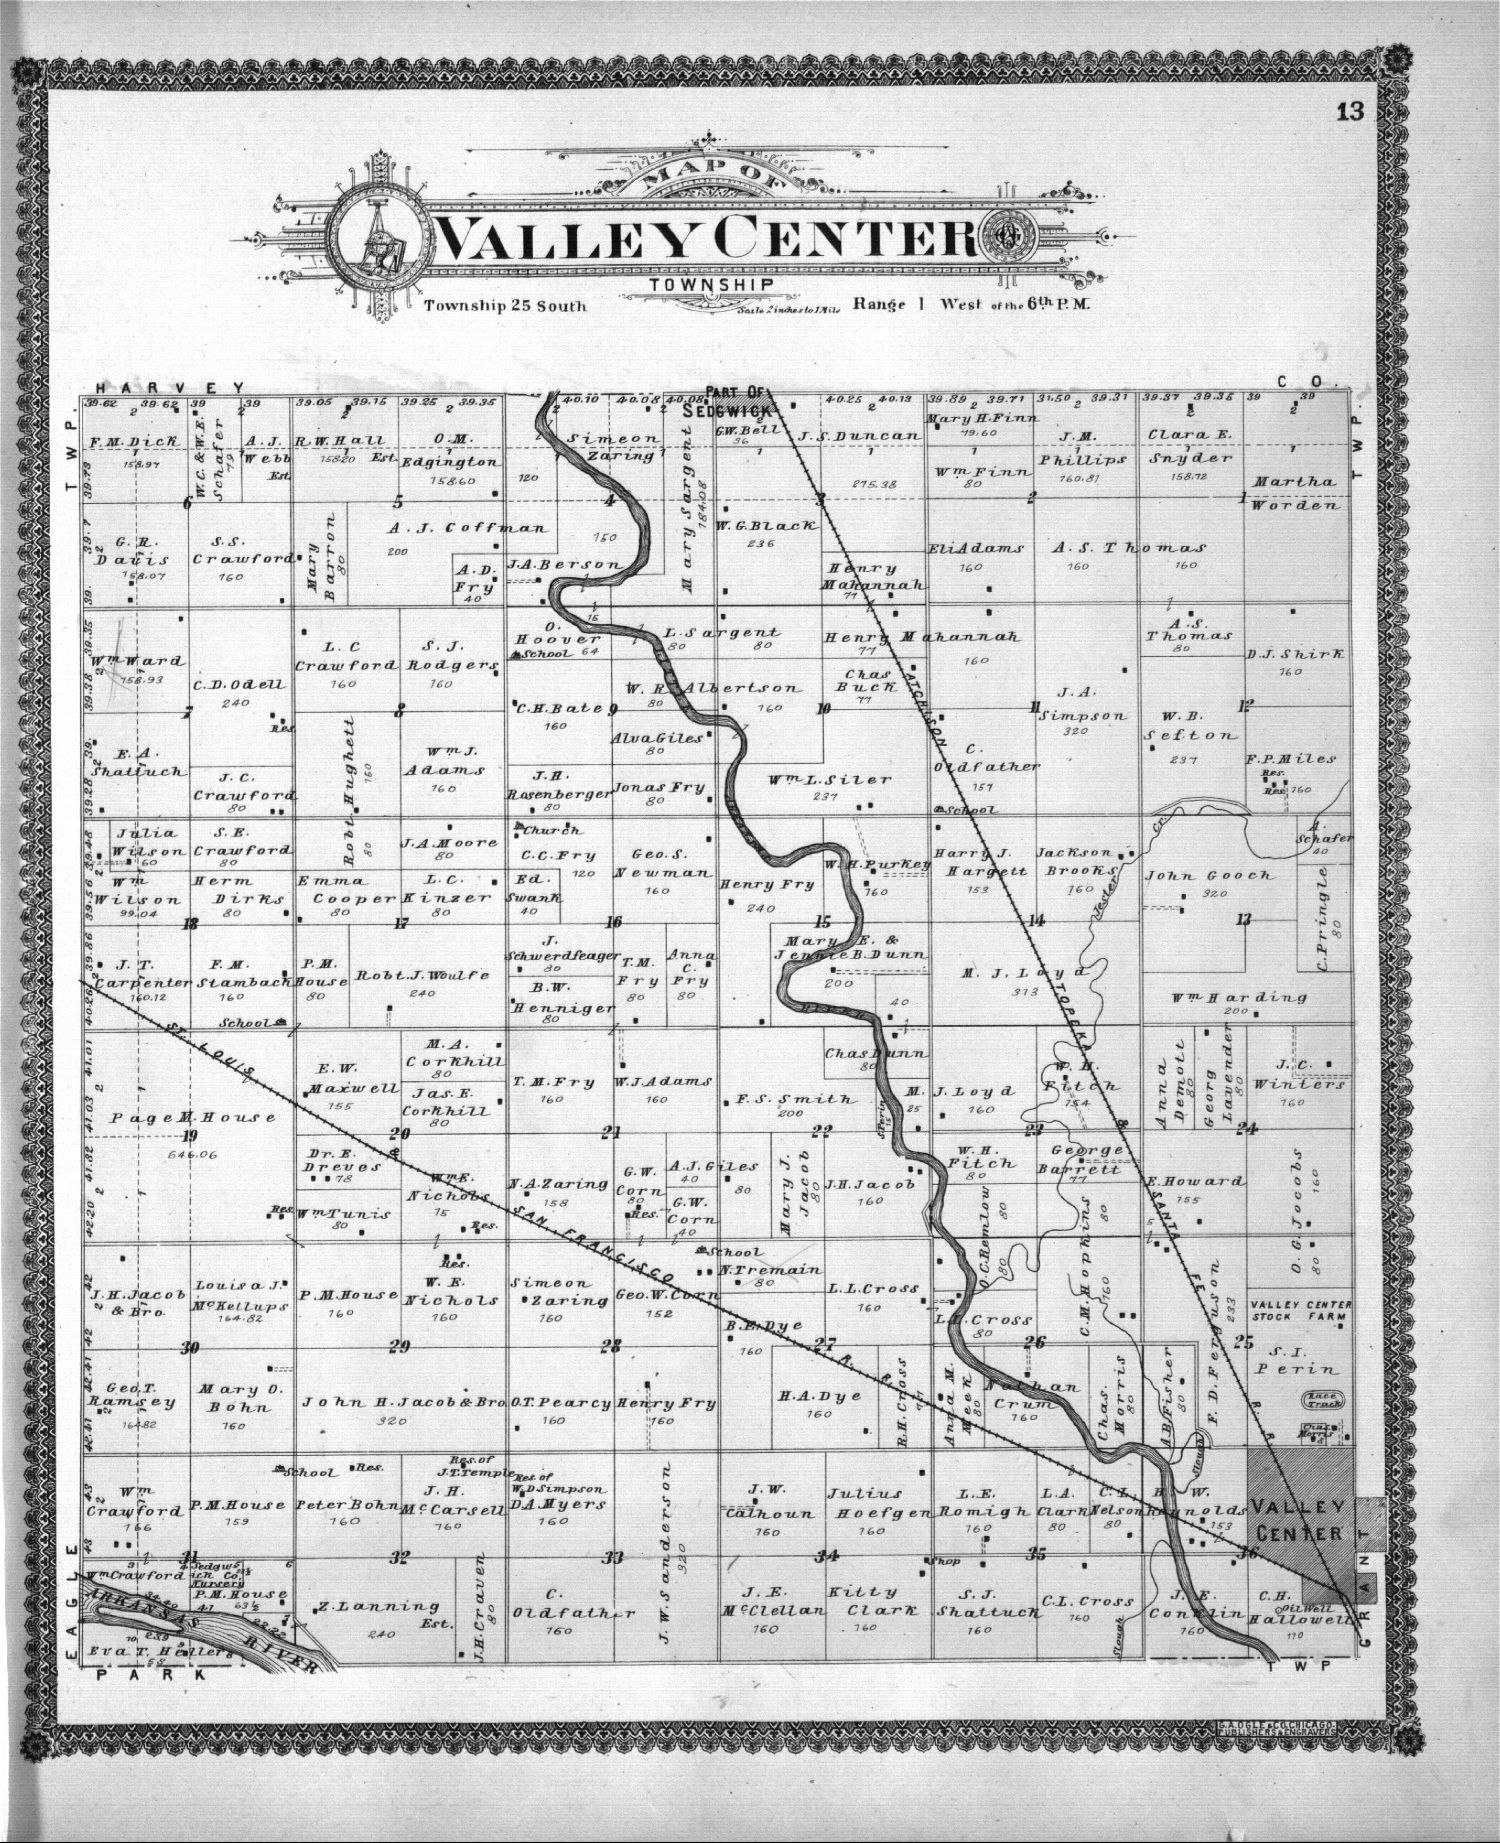 Standard atlas of Sedgwick County, Kansas - 13